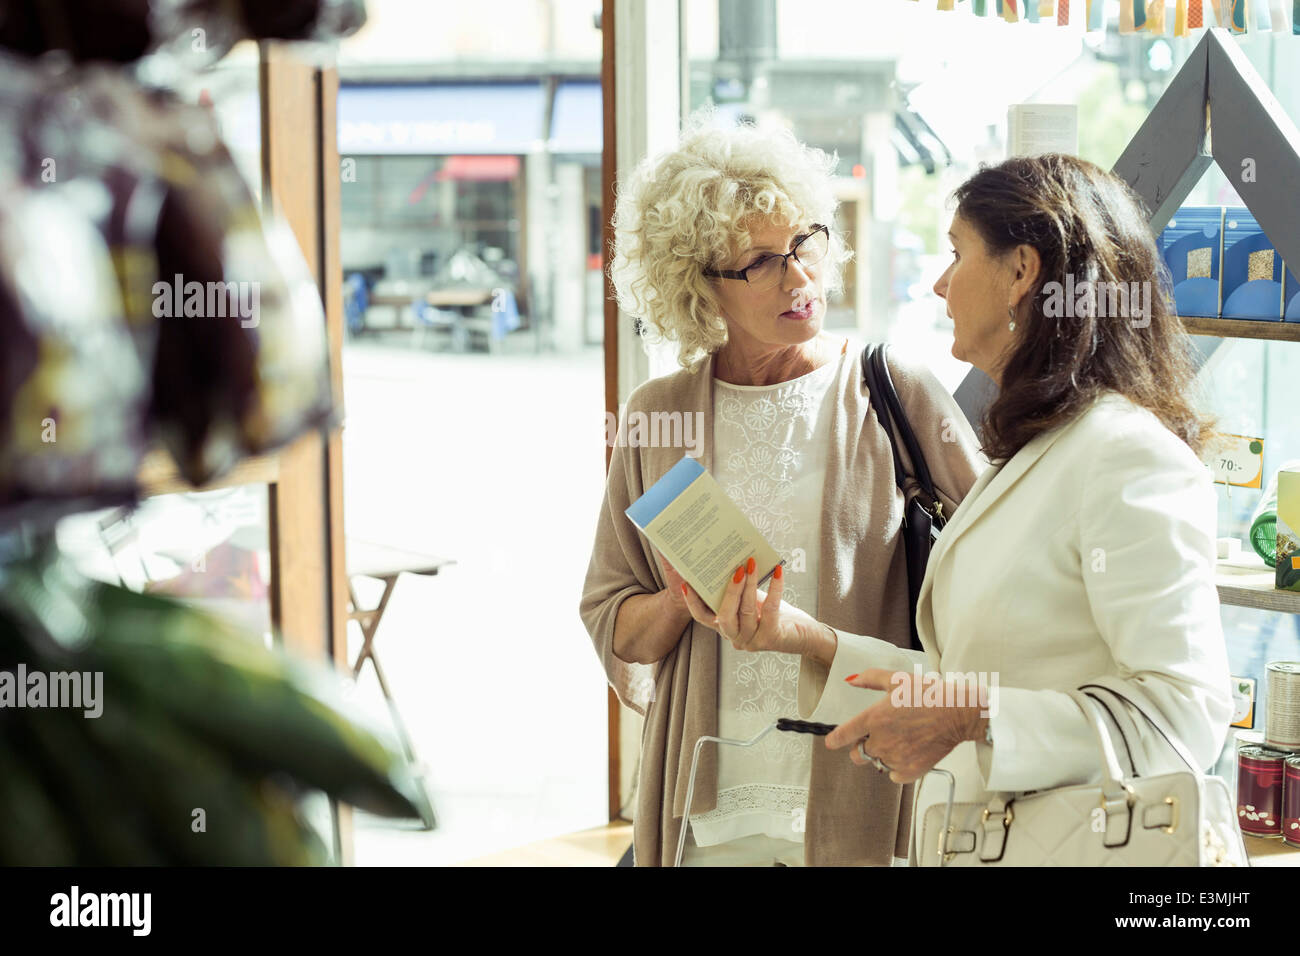 Senior women discussing over product in store - Stock Image